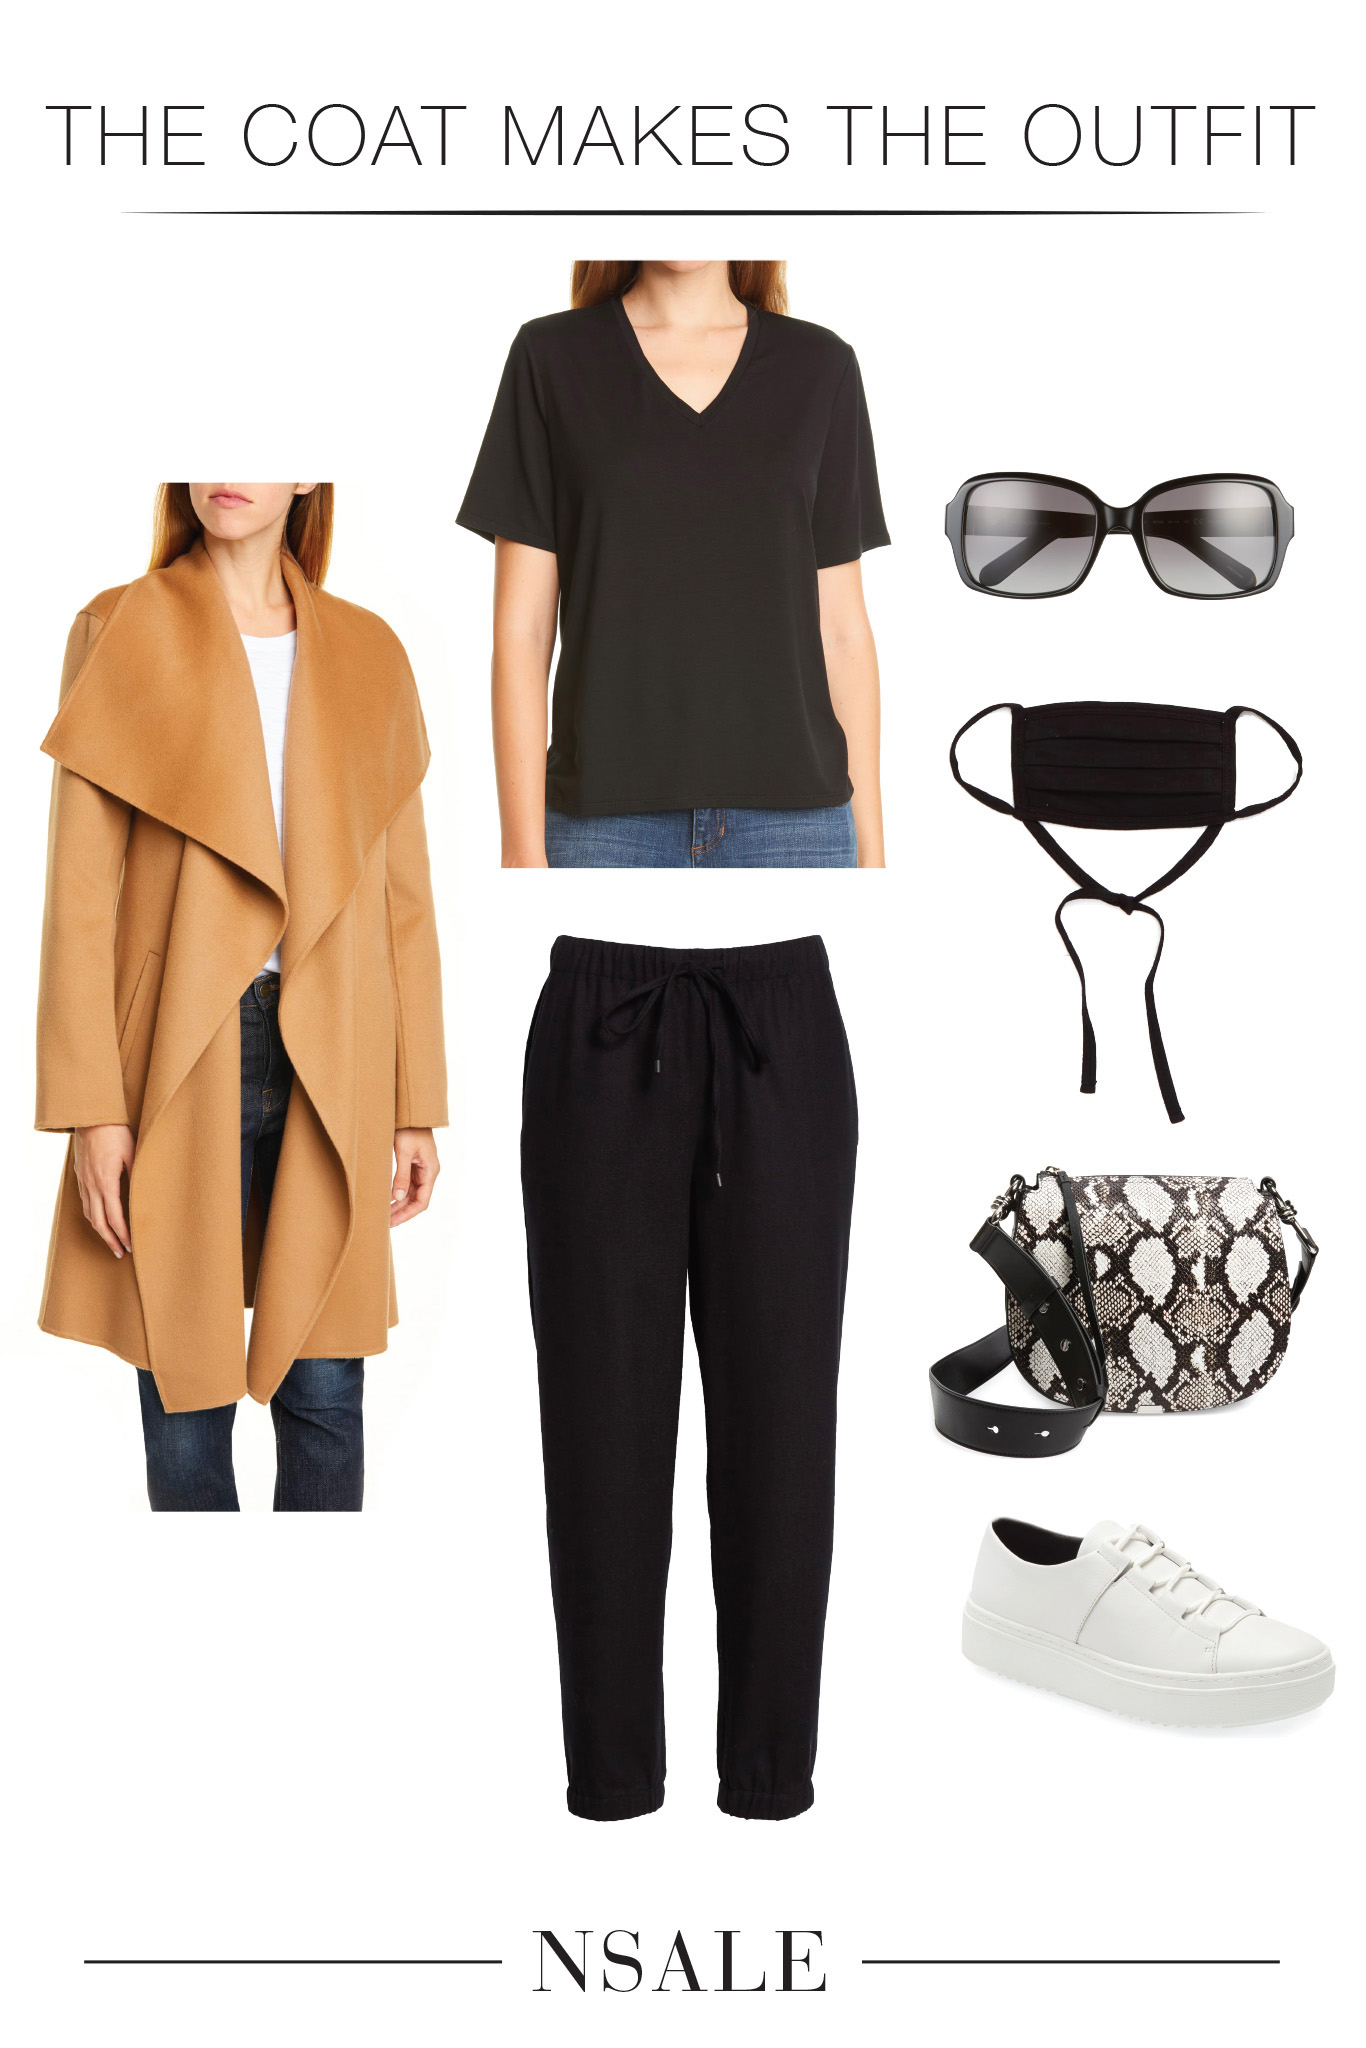 Hello...EILEEN FISHER wool joggers in the #NSale?? An instant couch-to-chic outfit. Add a fab coat, an eco-conscious v-neck tee & comfy cute sneaks.